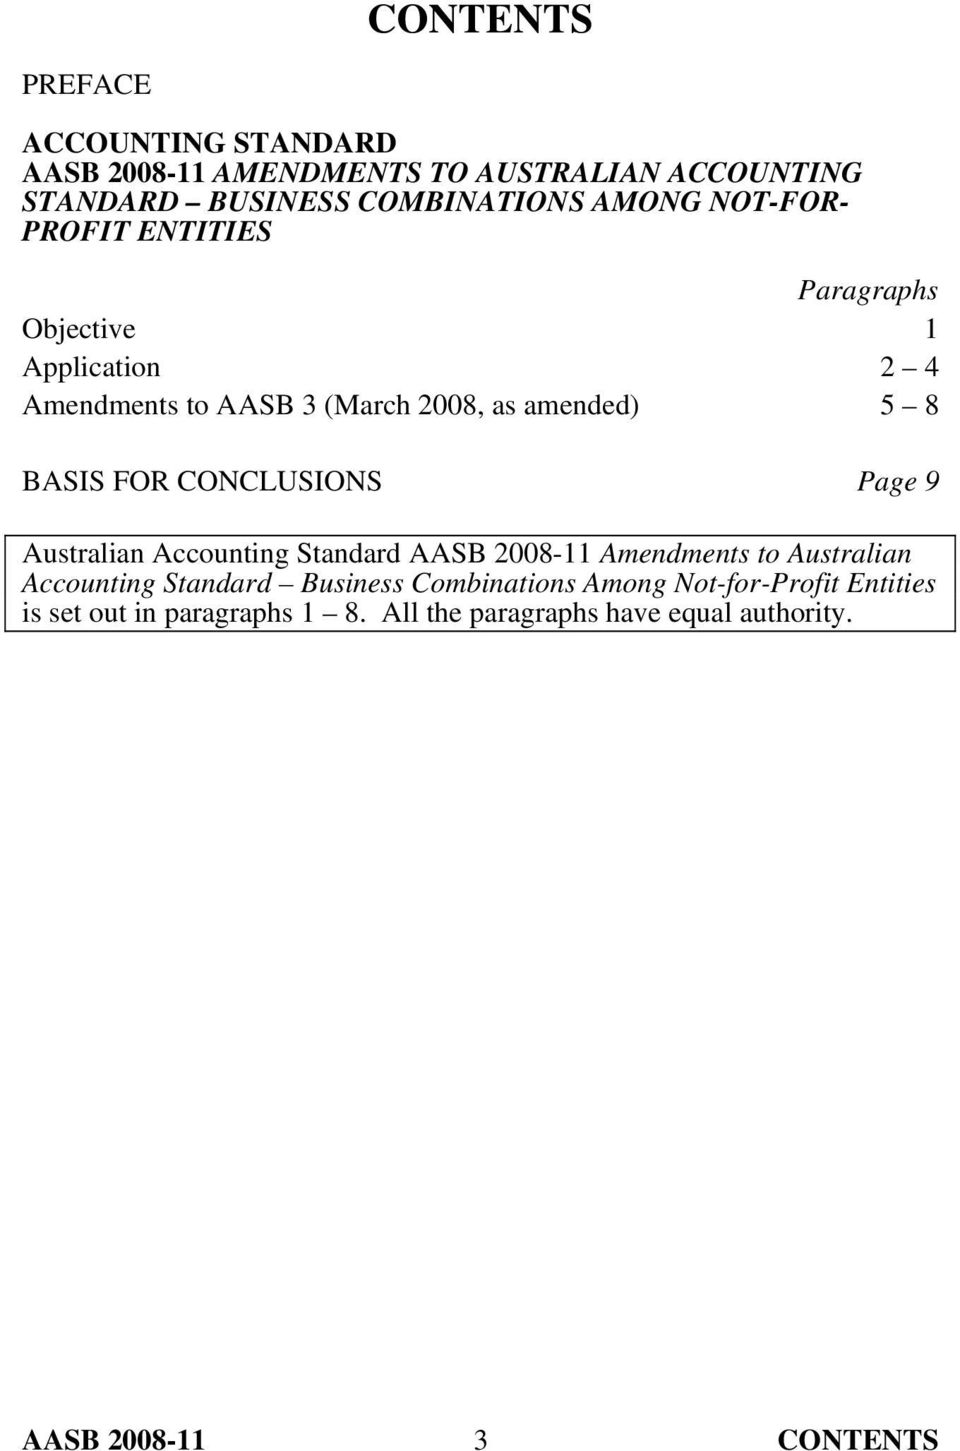 CONCLUSIONS Page 9 Australian Accounting Standard AASB 2008-11 Amendments to Australian Accounting Standard Business